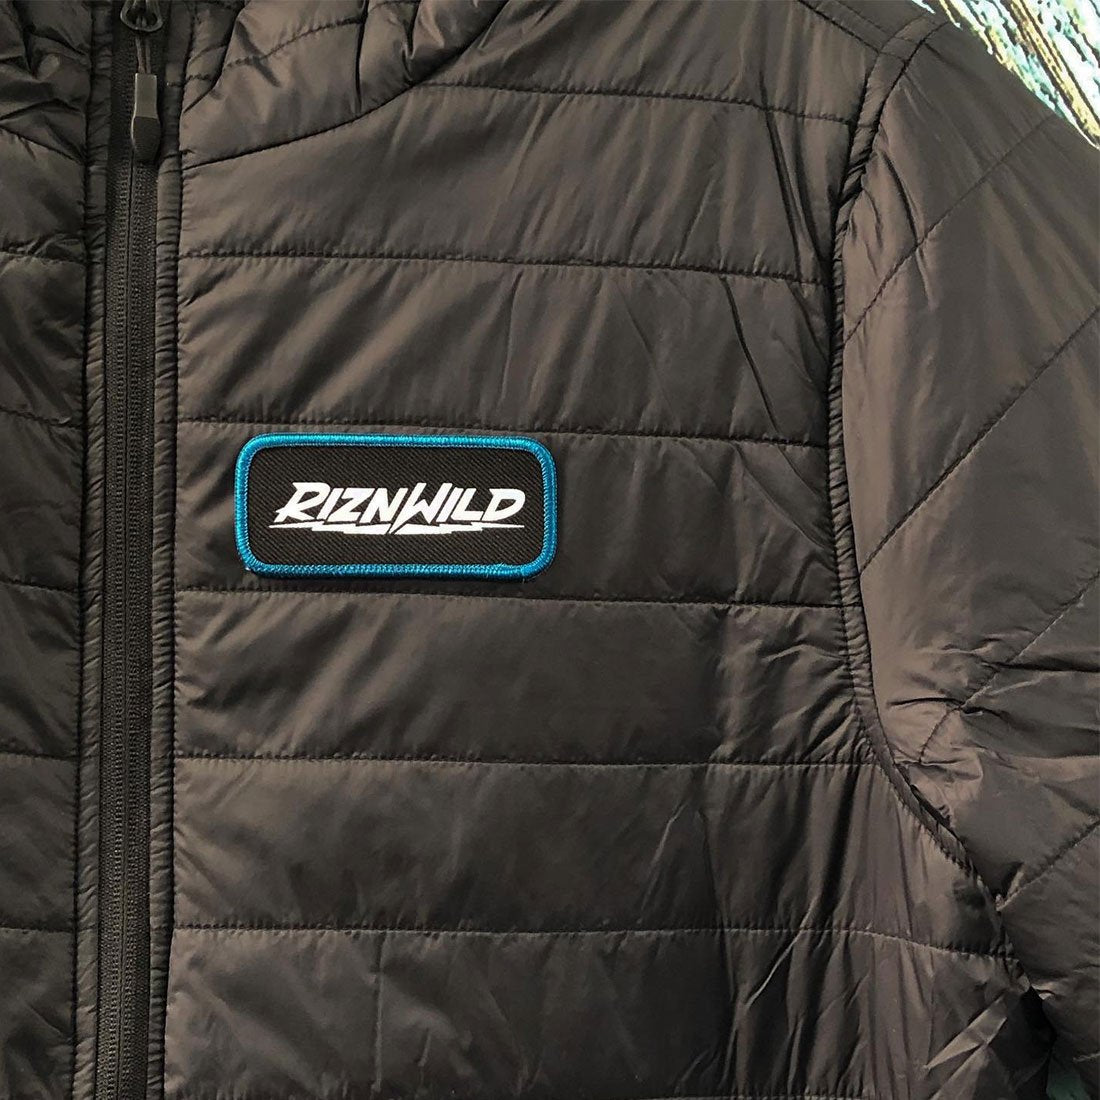 RIZNWILD | Close view of the puffer jacket patch sewn on